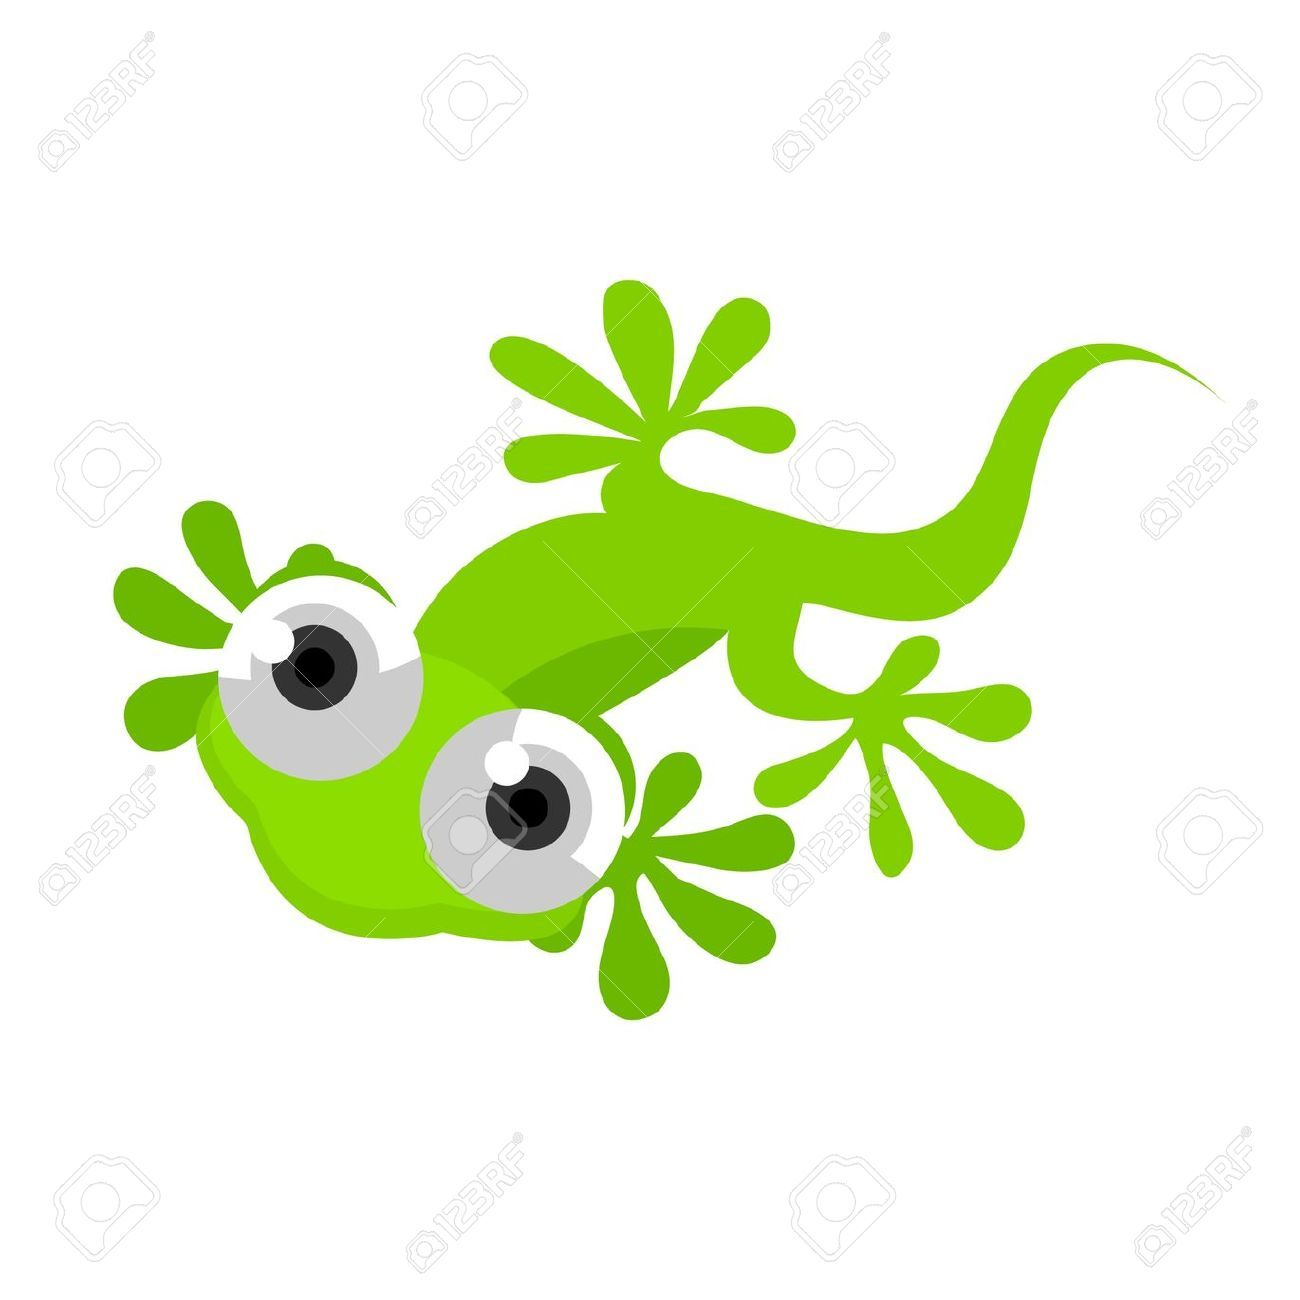 1300x1300 17964298 Gecko Stock Vector cartoon gecko cute.jpg (1300×1300